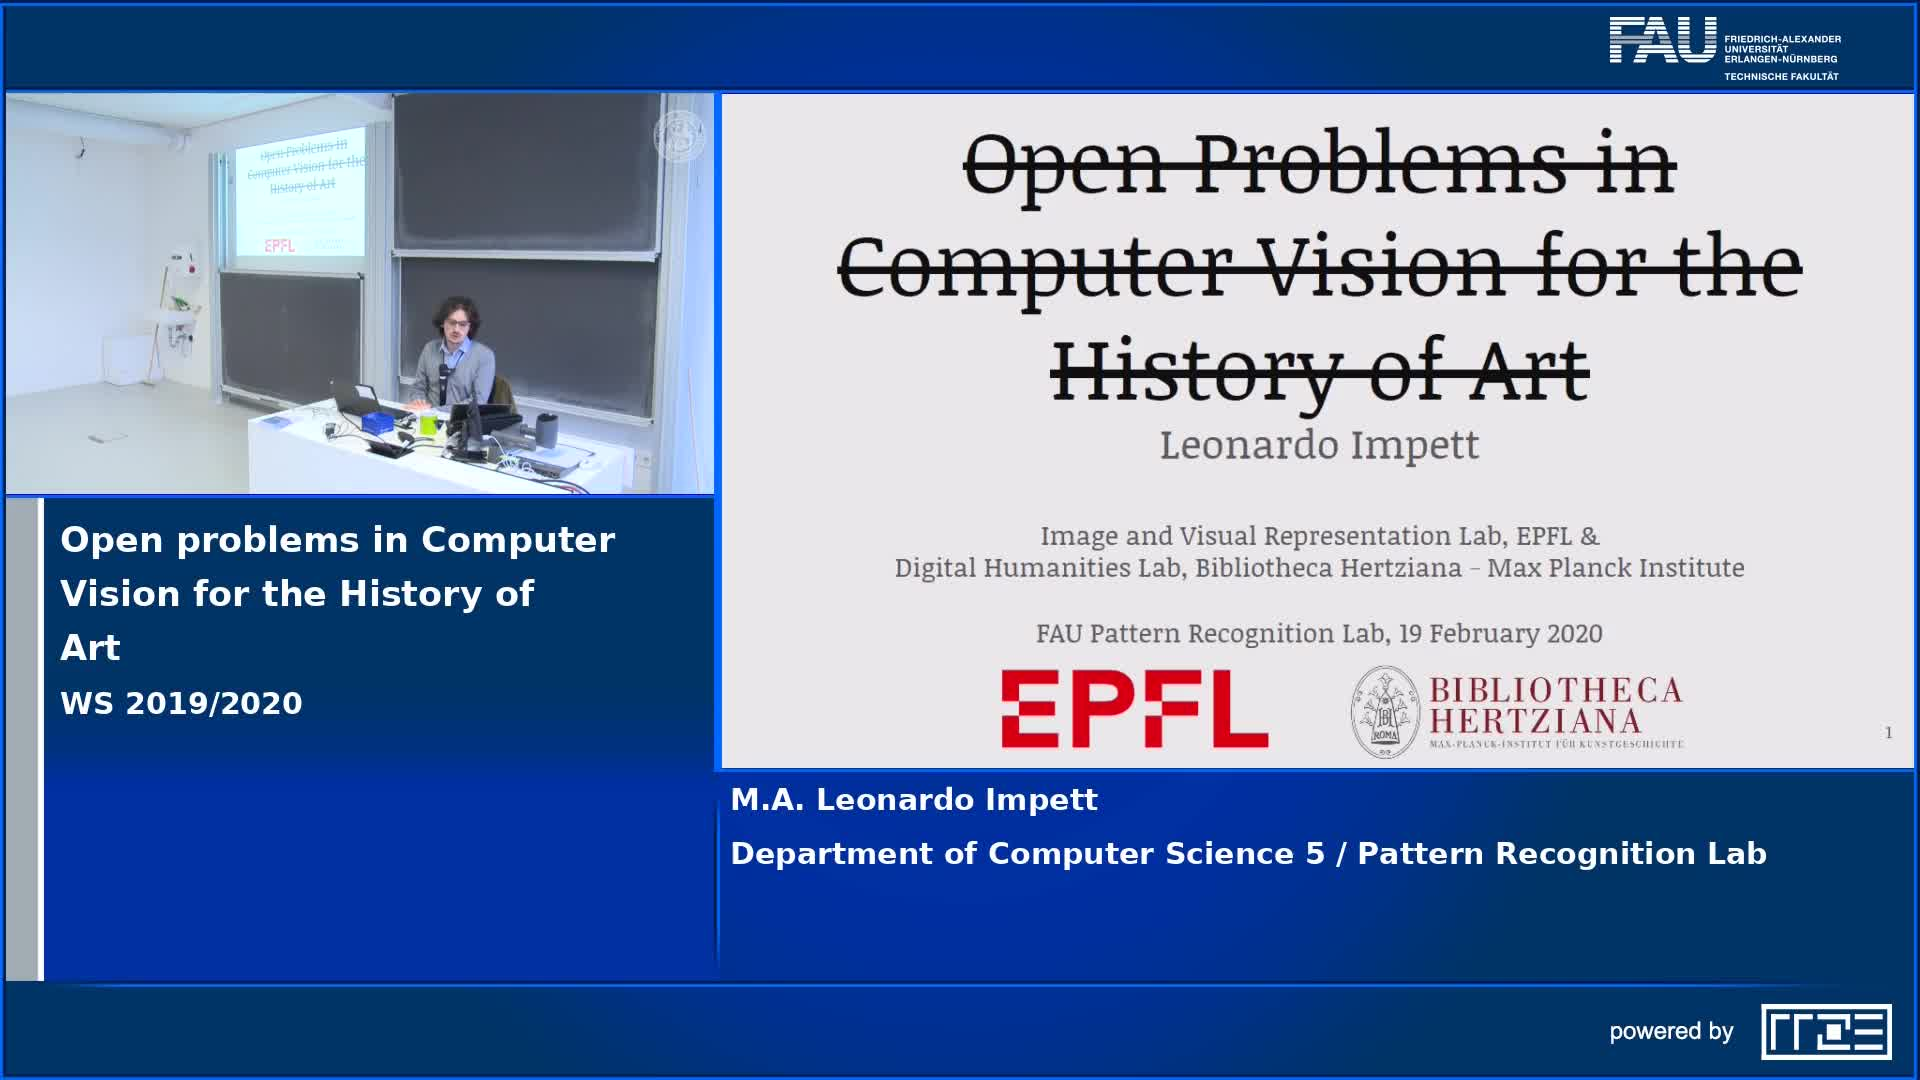 Open problems in Computer Vision for the History of Art preview image